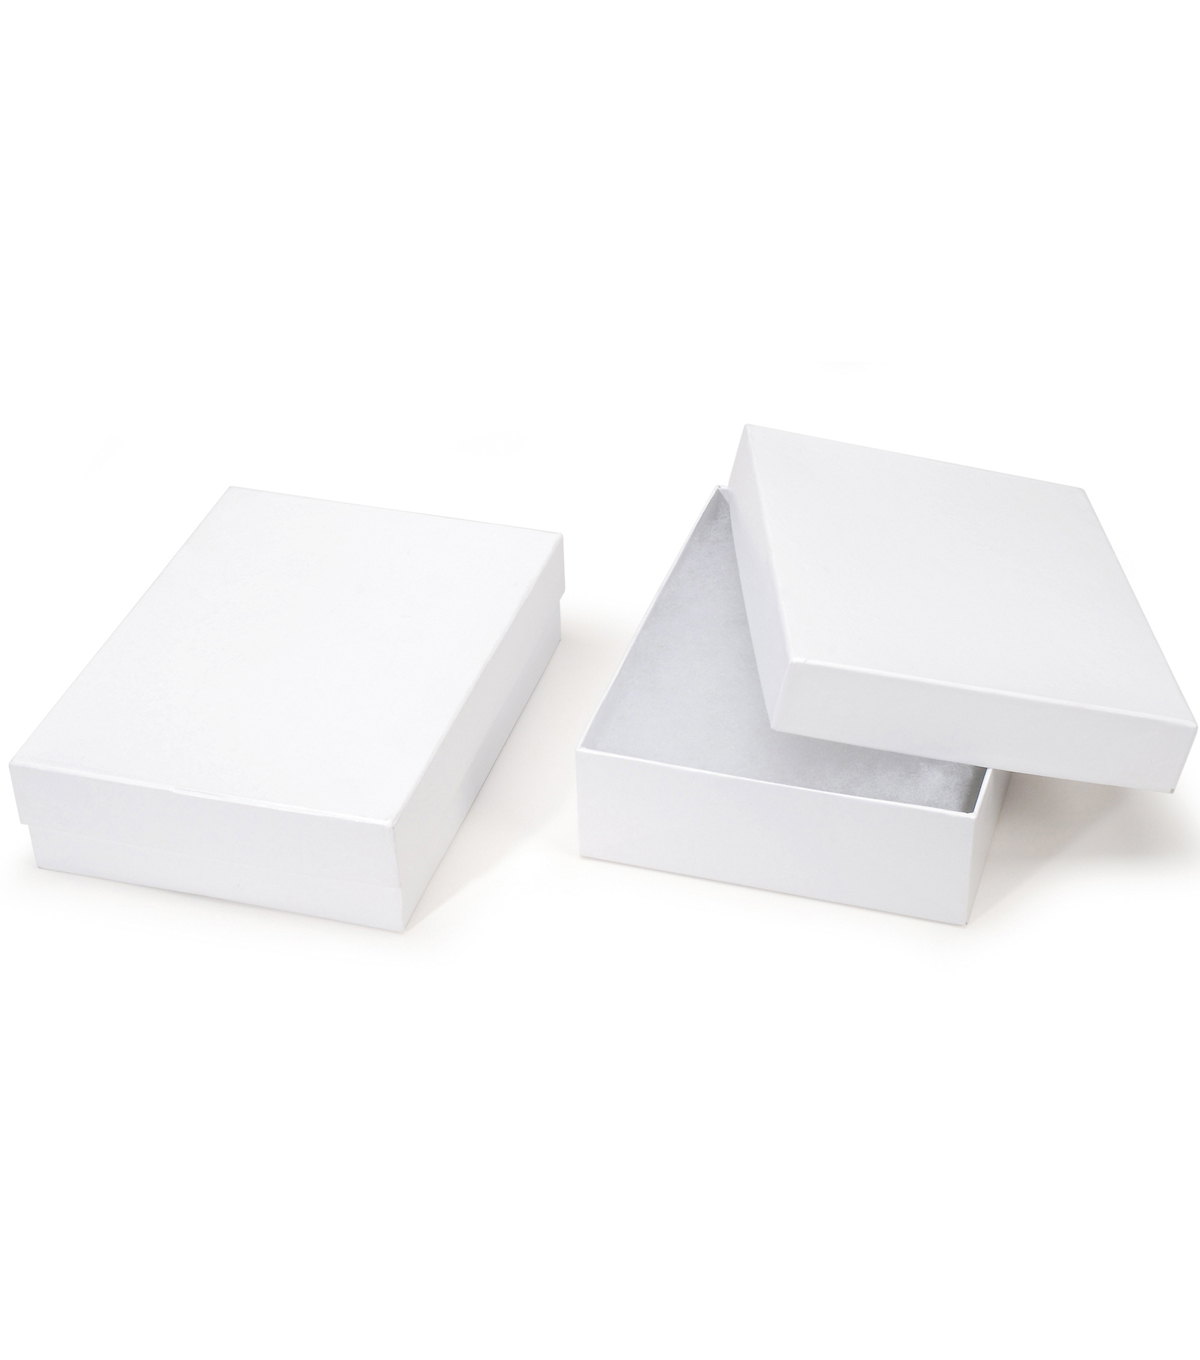 White Cardboard Jewelry Box 6 x 8 x 2 inches 2pcspkg JOANN